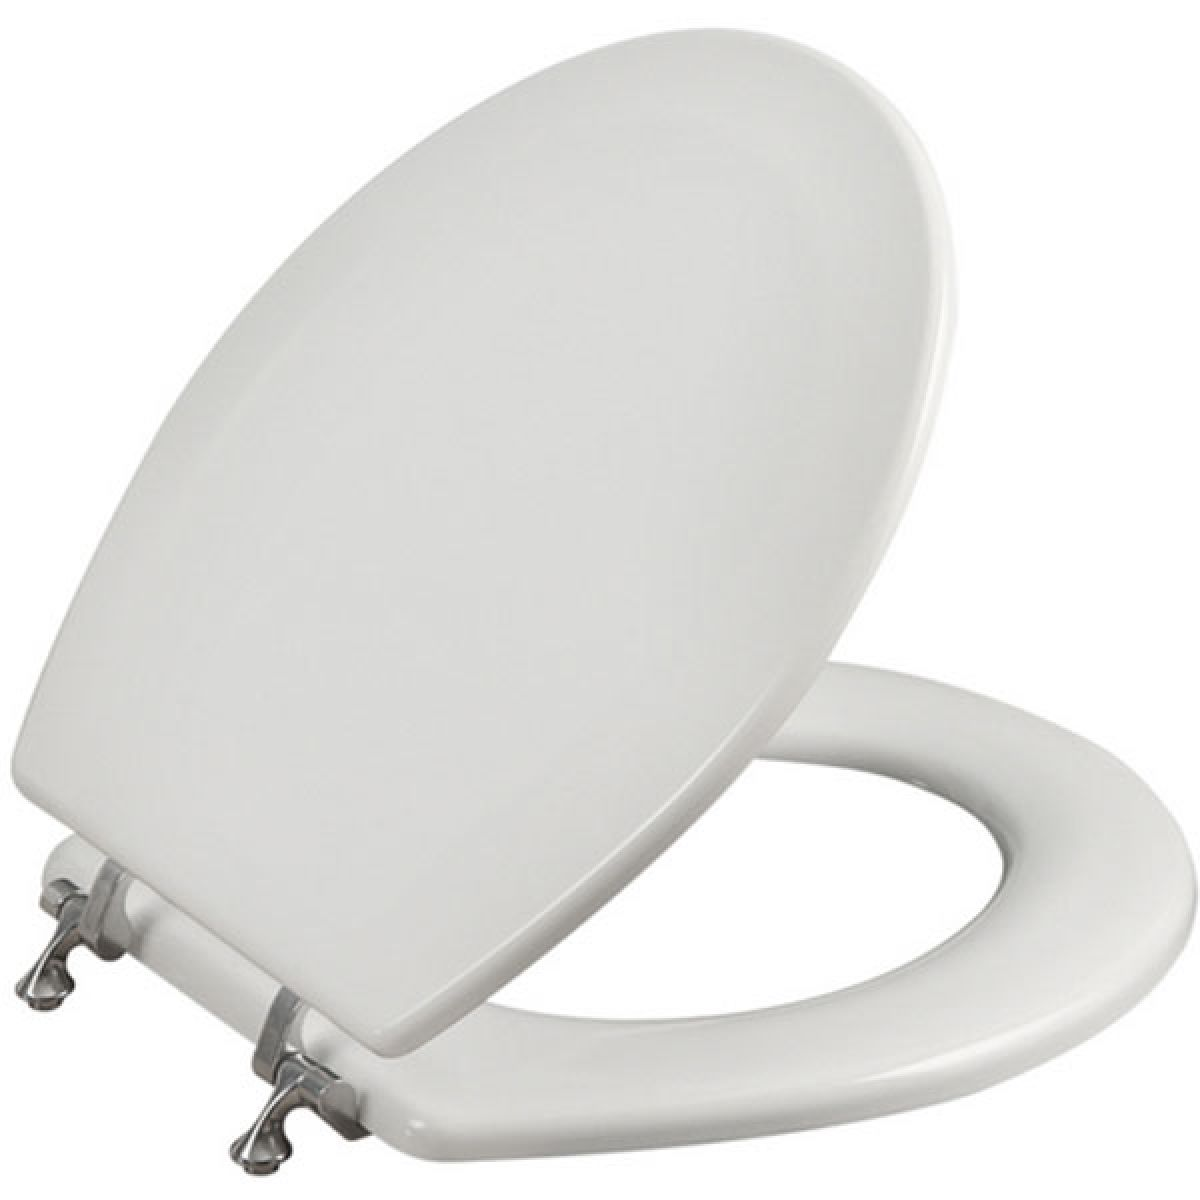 Tavistock Topaz Wood Toilet Seat in Gloss White